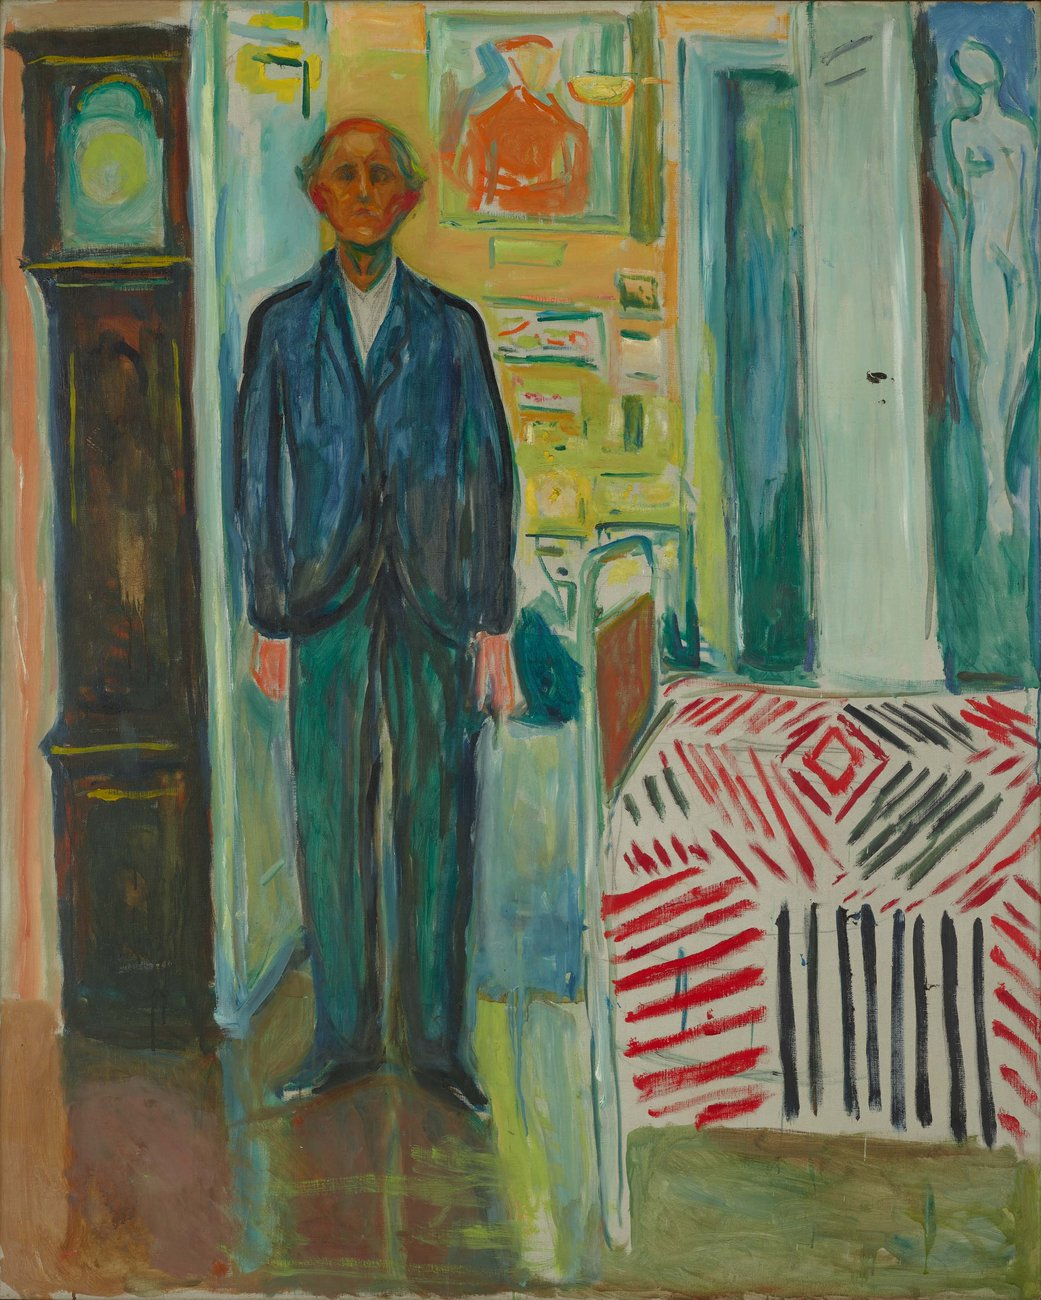 A master by the age of 30, Edvard Munch (1863–1944) was among the most celebrated and controversial artists of his generation. But, as he confessed in 1939, his true breakthrough came very late in life. Featuring 44 landmark compositions about art, love, mortality, and the ravages of time, Edvard Munch: Between the Clock and the Bed uses the artist's last significant self-portrait as a starting point to reassess a lifetime of painting. Together, these profoundly human and technically daring artworks reveal Munch as a tireless innovator and an artist as revolutionary in his maturity as he was in his breakthrough years.